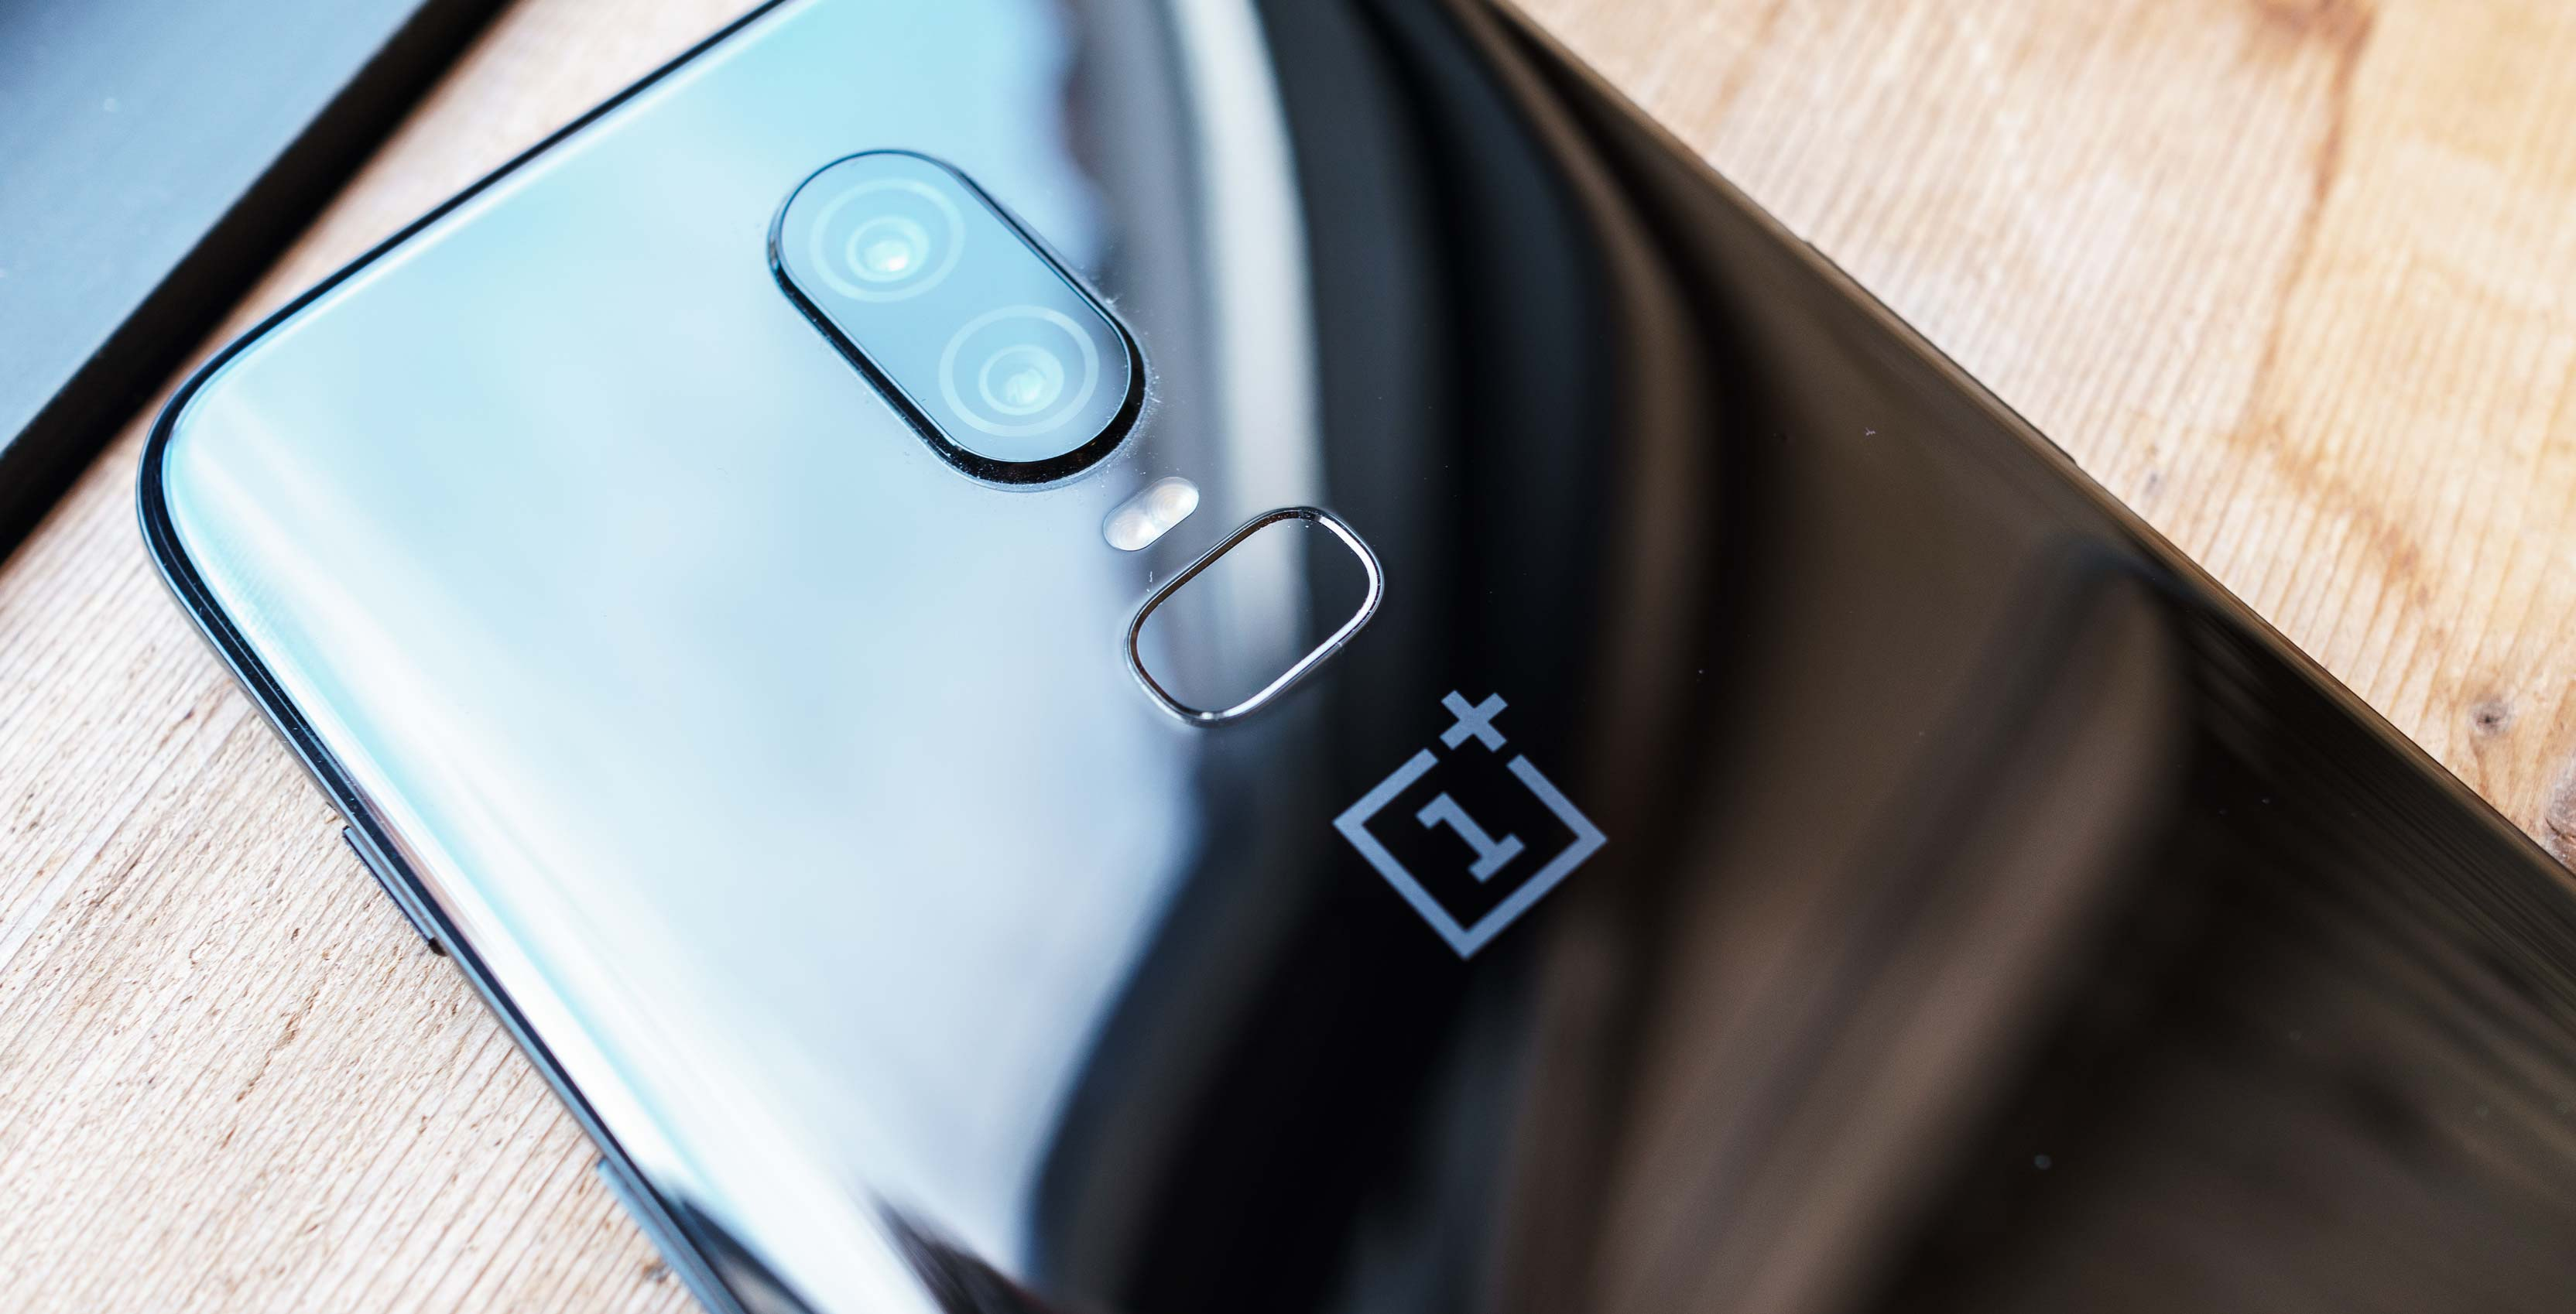 bffa500e703 A new set of leaked OnePlus 6T images corroborate many of the rumours about  the handset we ve seen in recent months